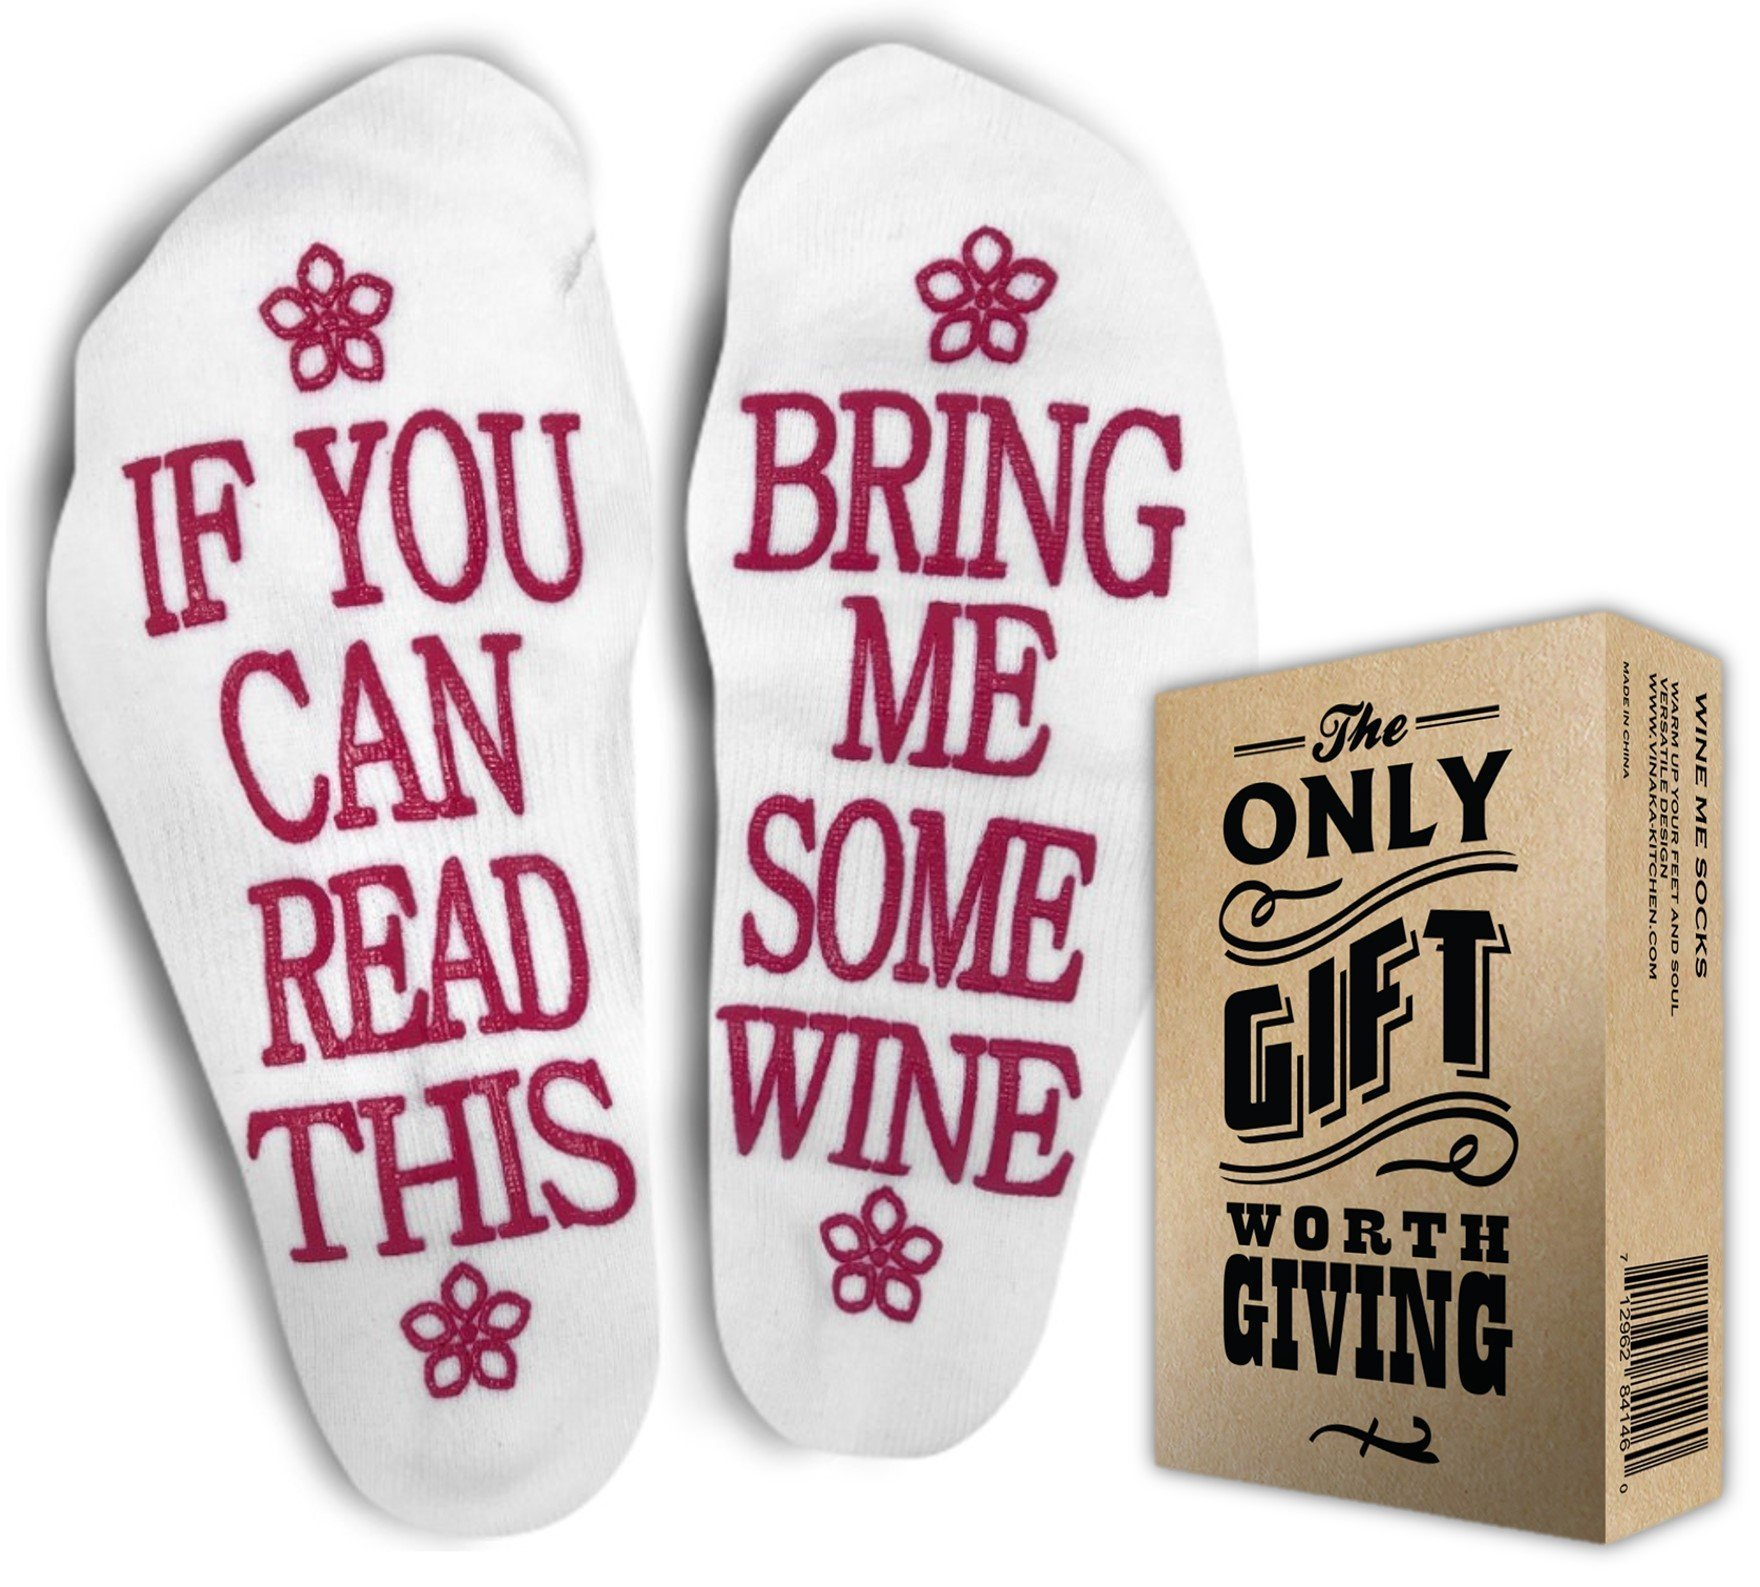 WINE SOCKS + Gift Box If you can read this bring me some wine